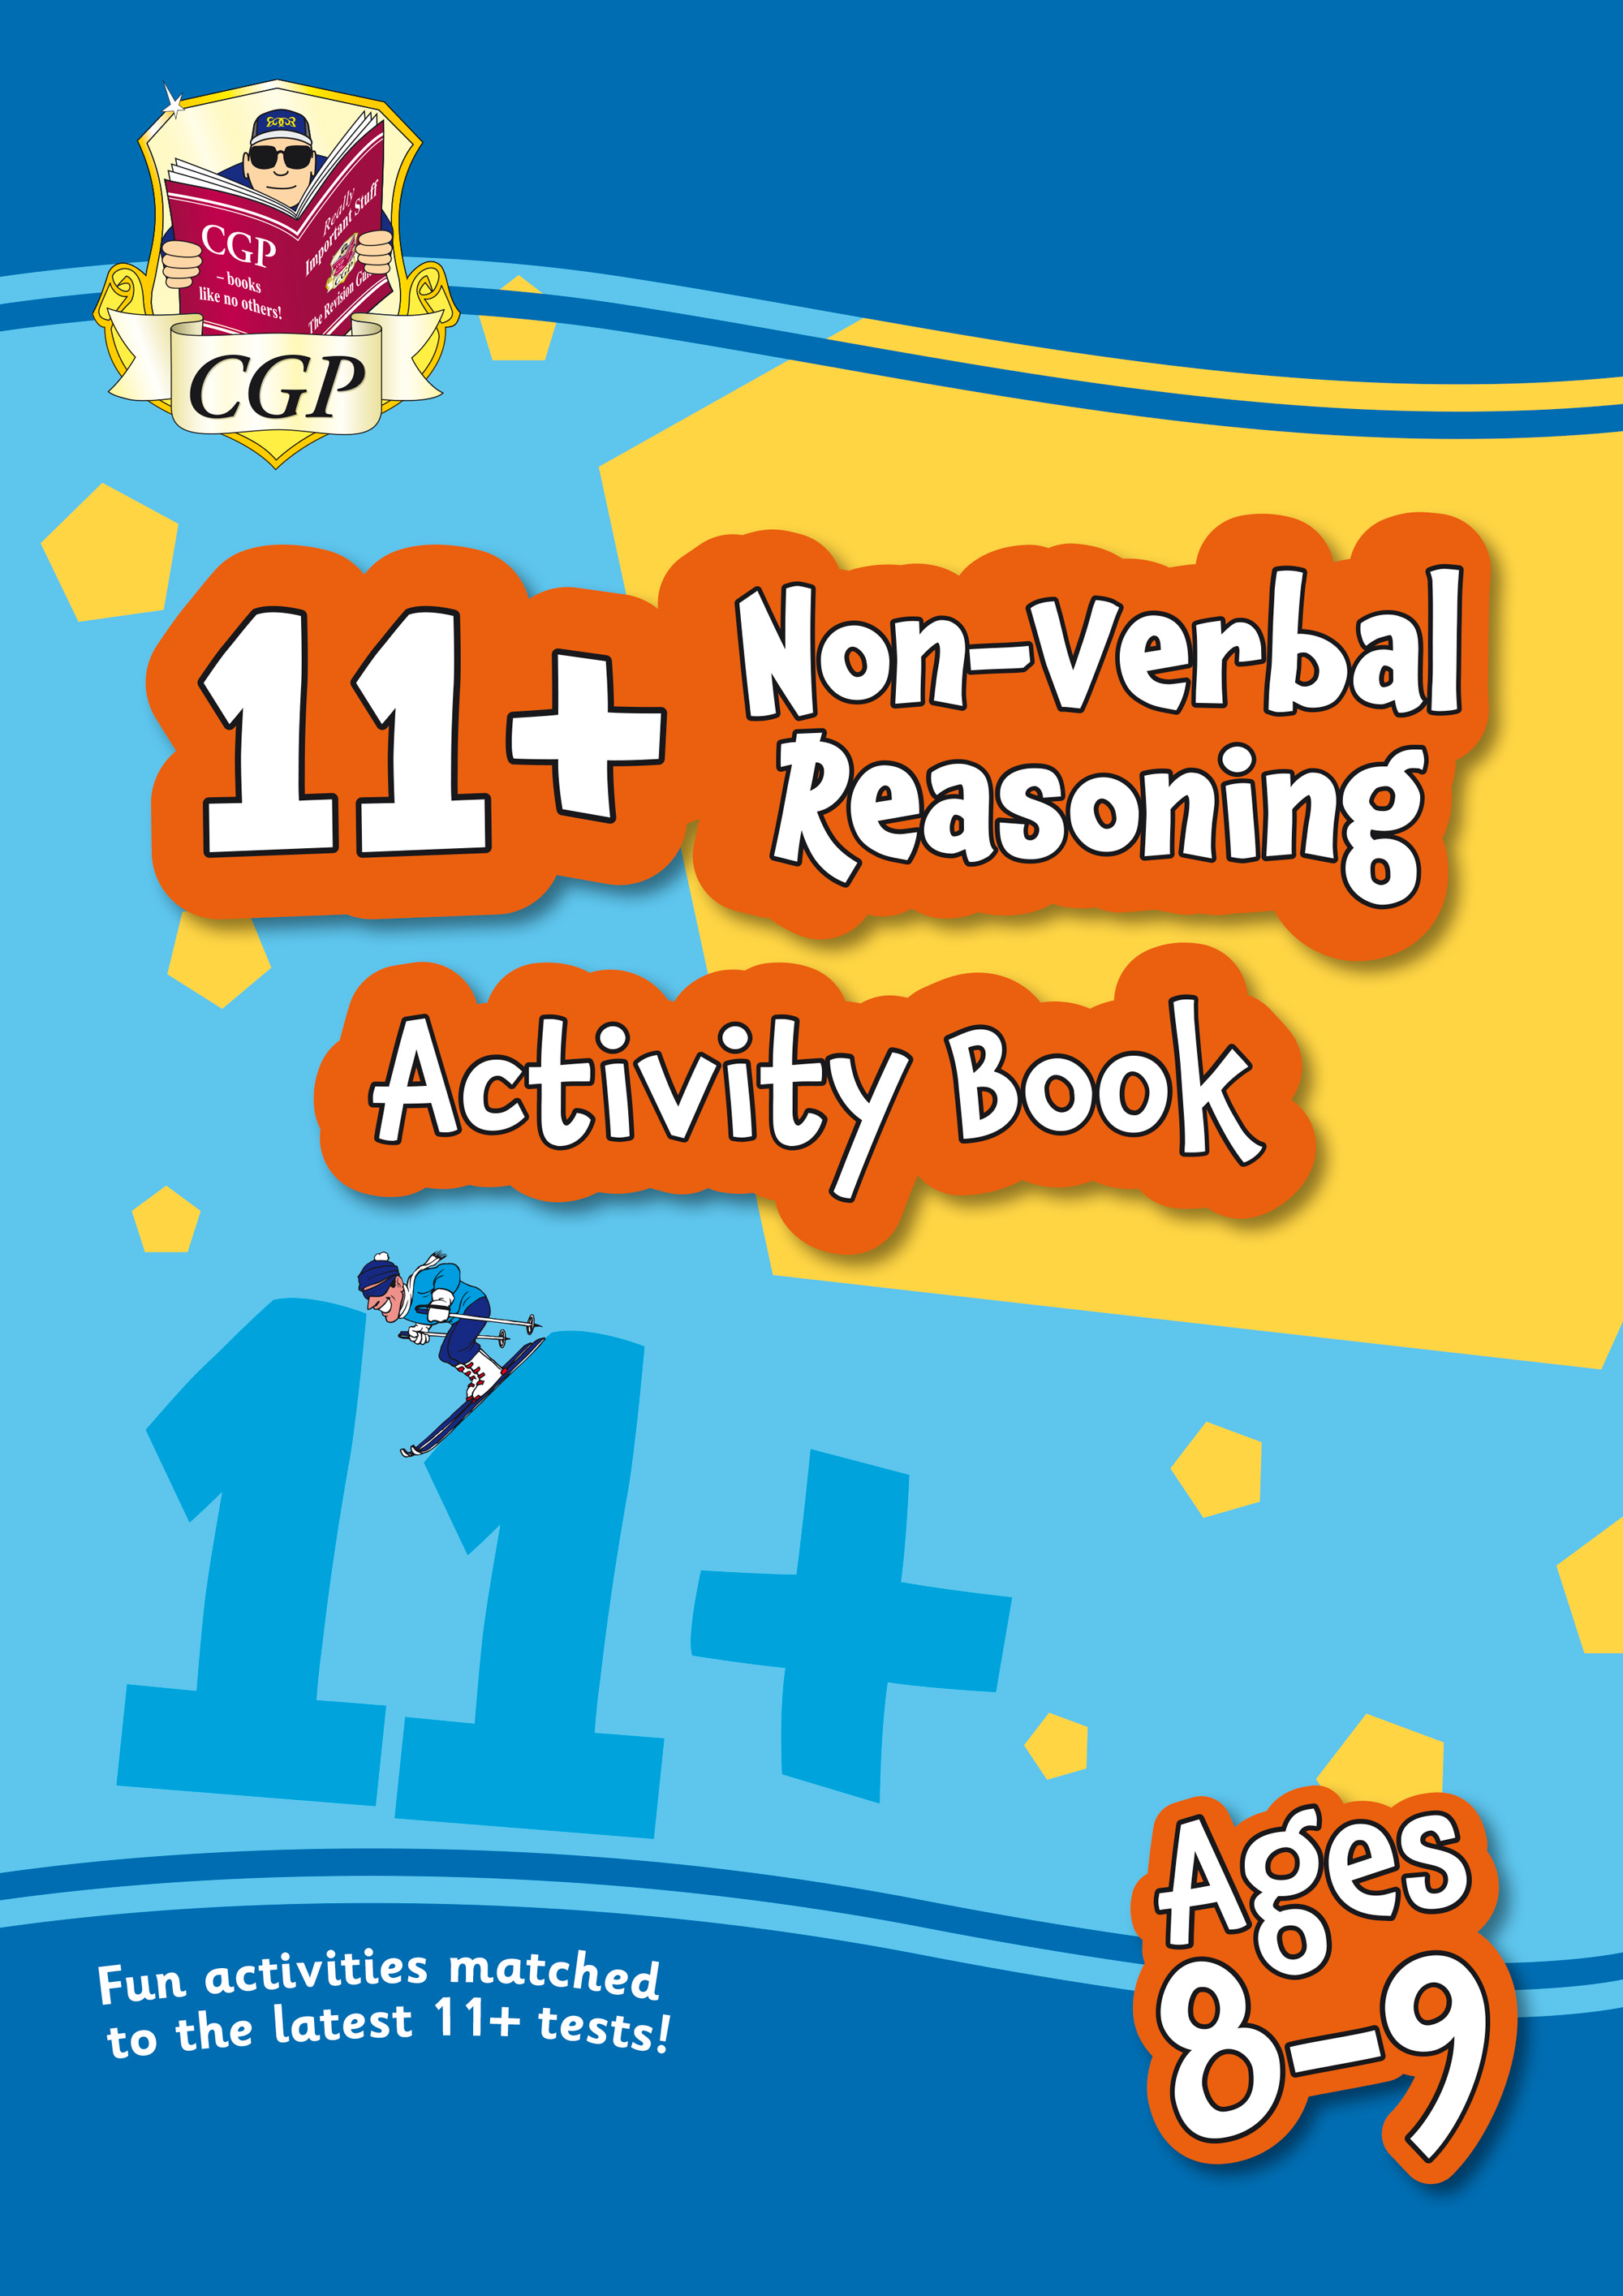 NF4QE1 - New 11+ Activity Book: Non-Verbal Reasoning - Ages 8-9